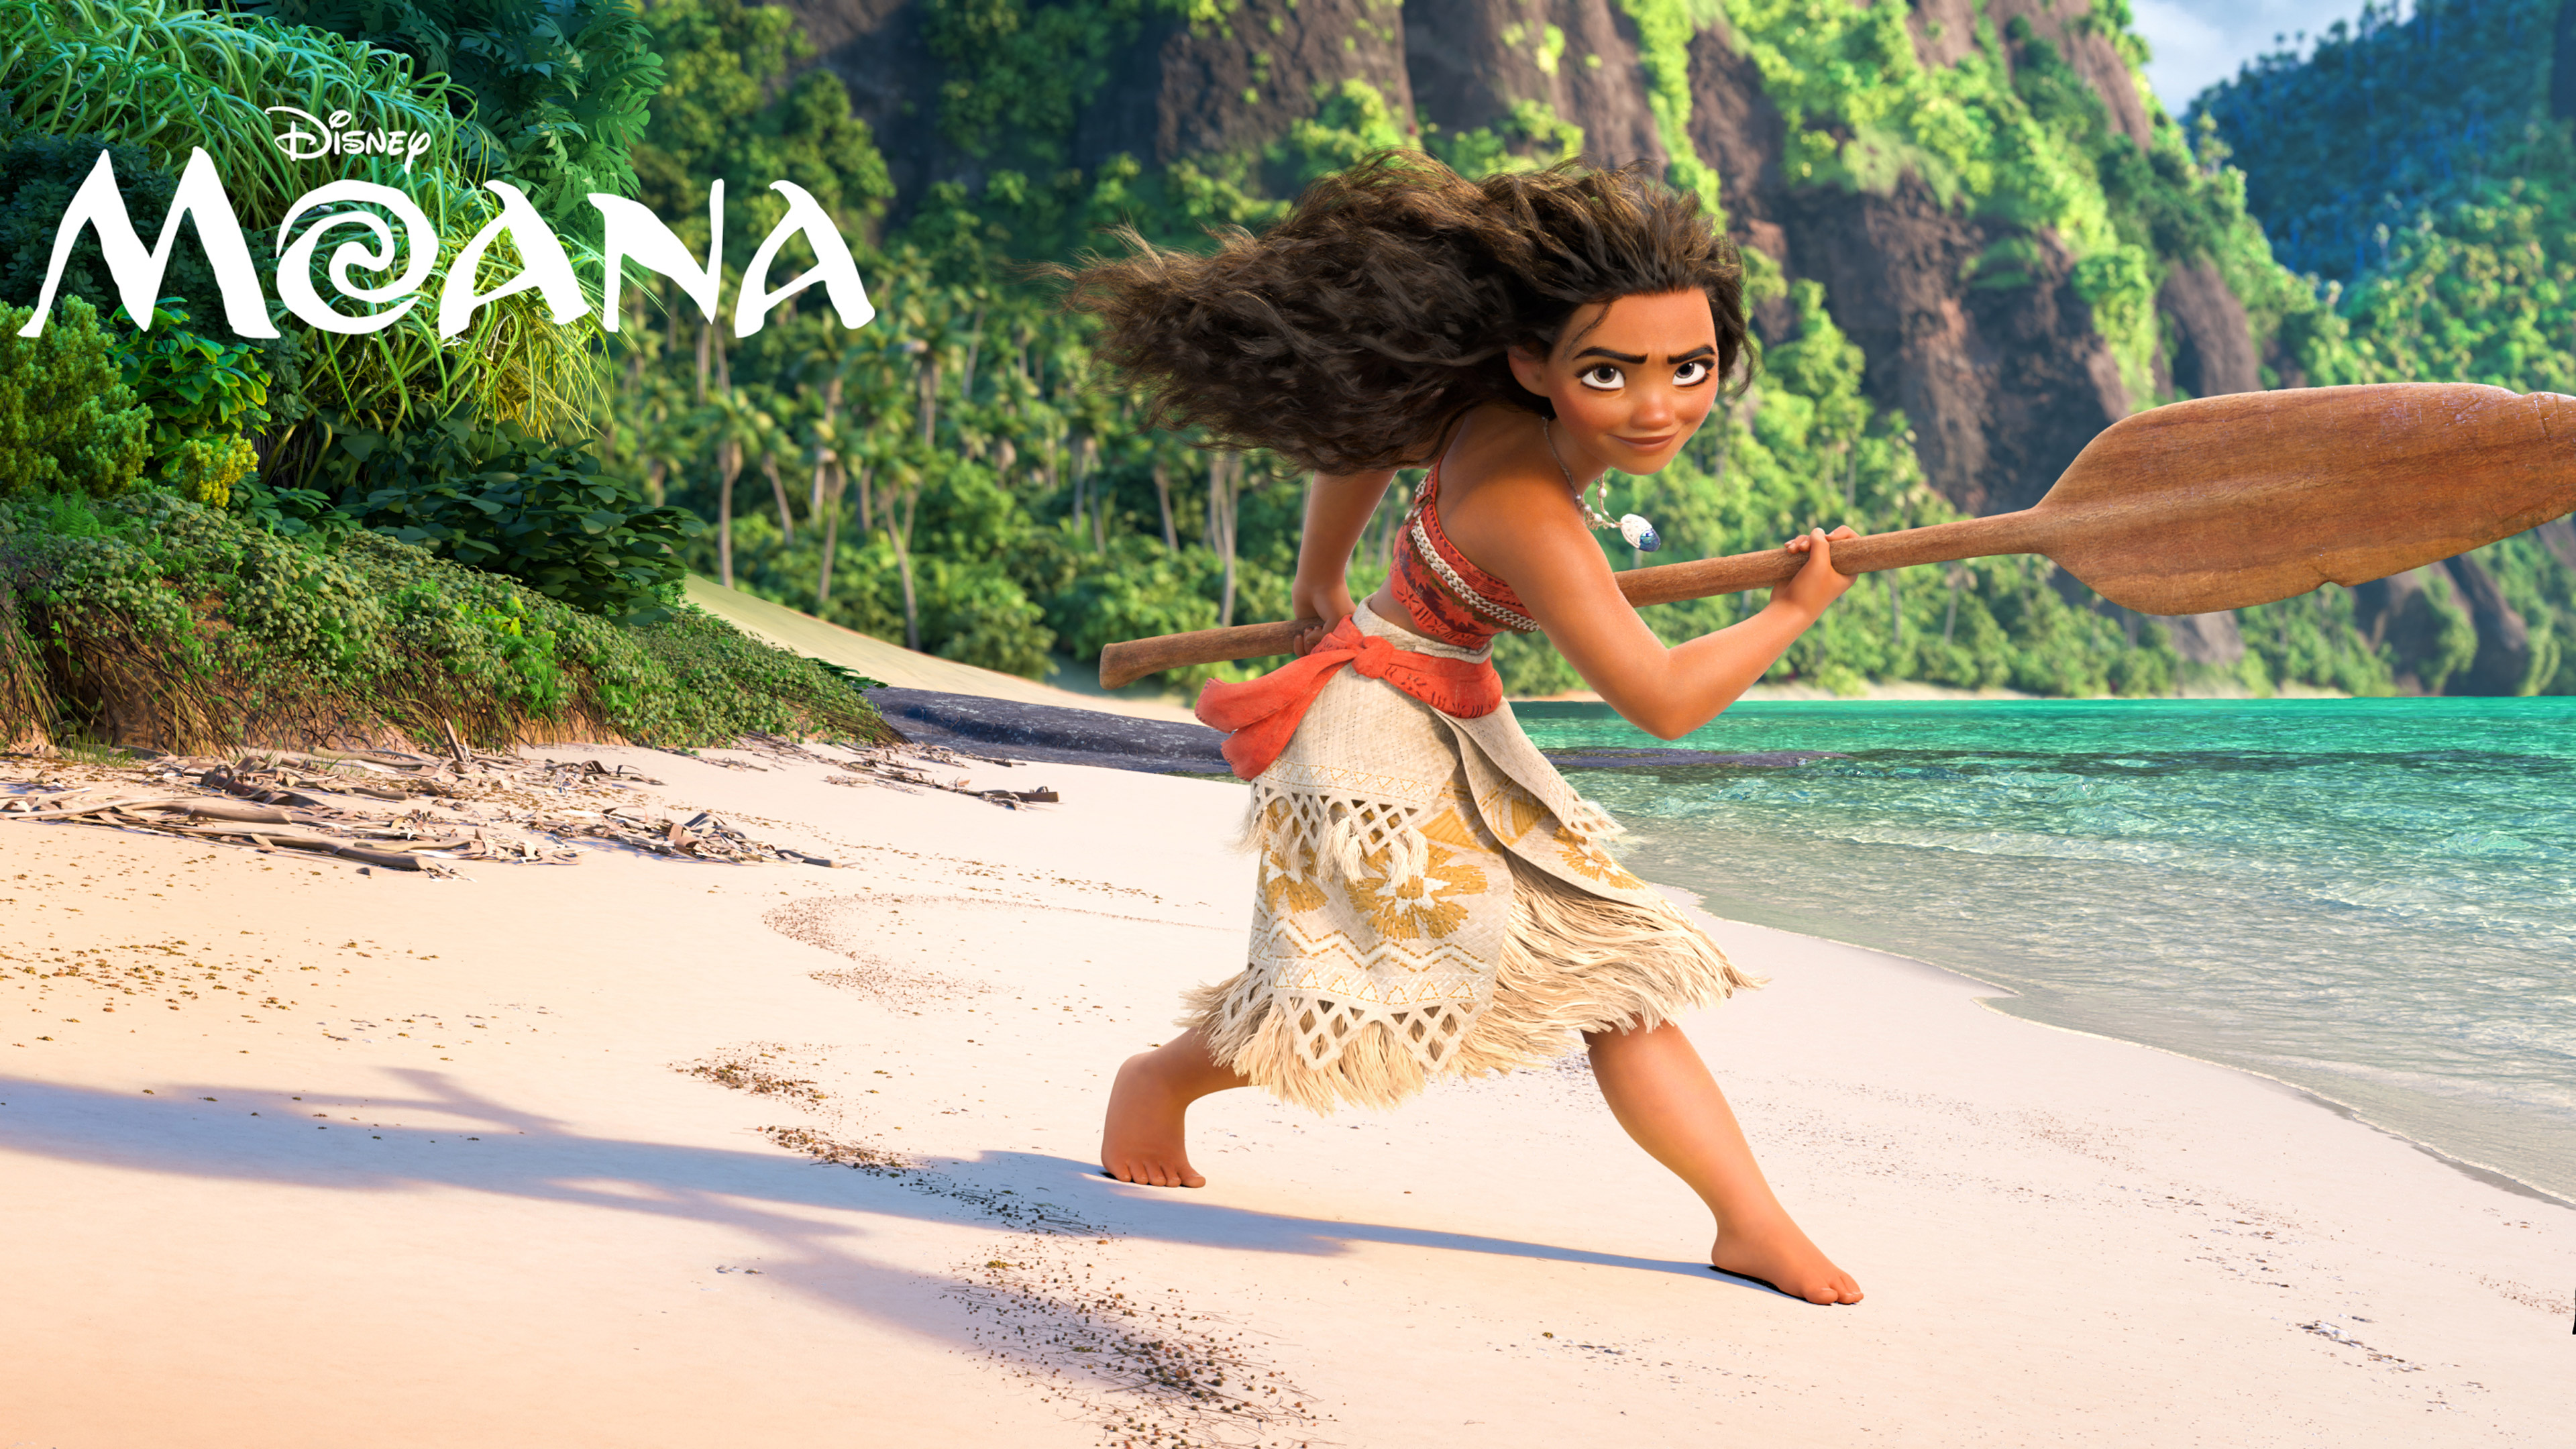 moana movie widescreen wallpaper 61672